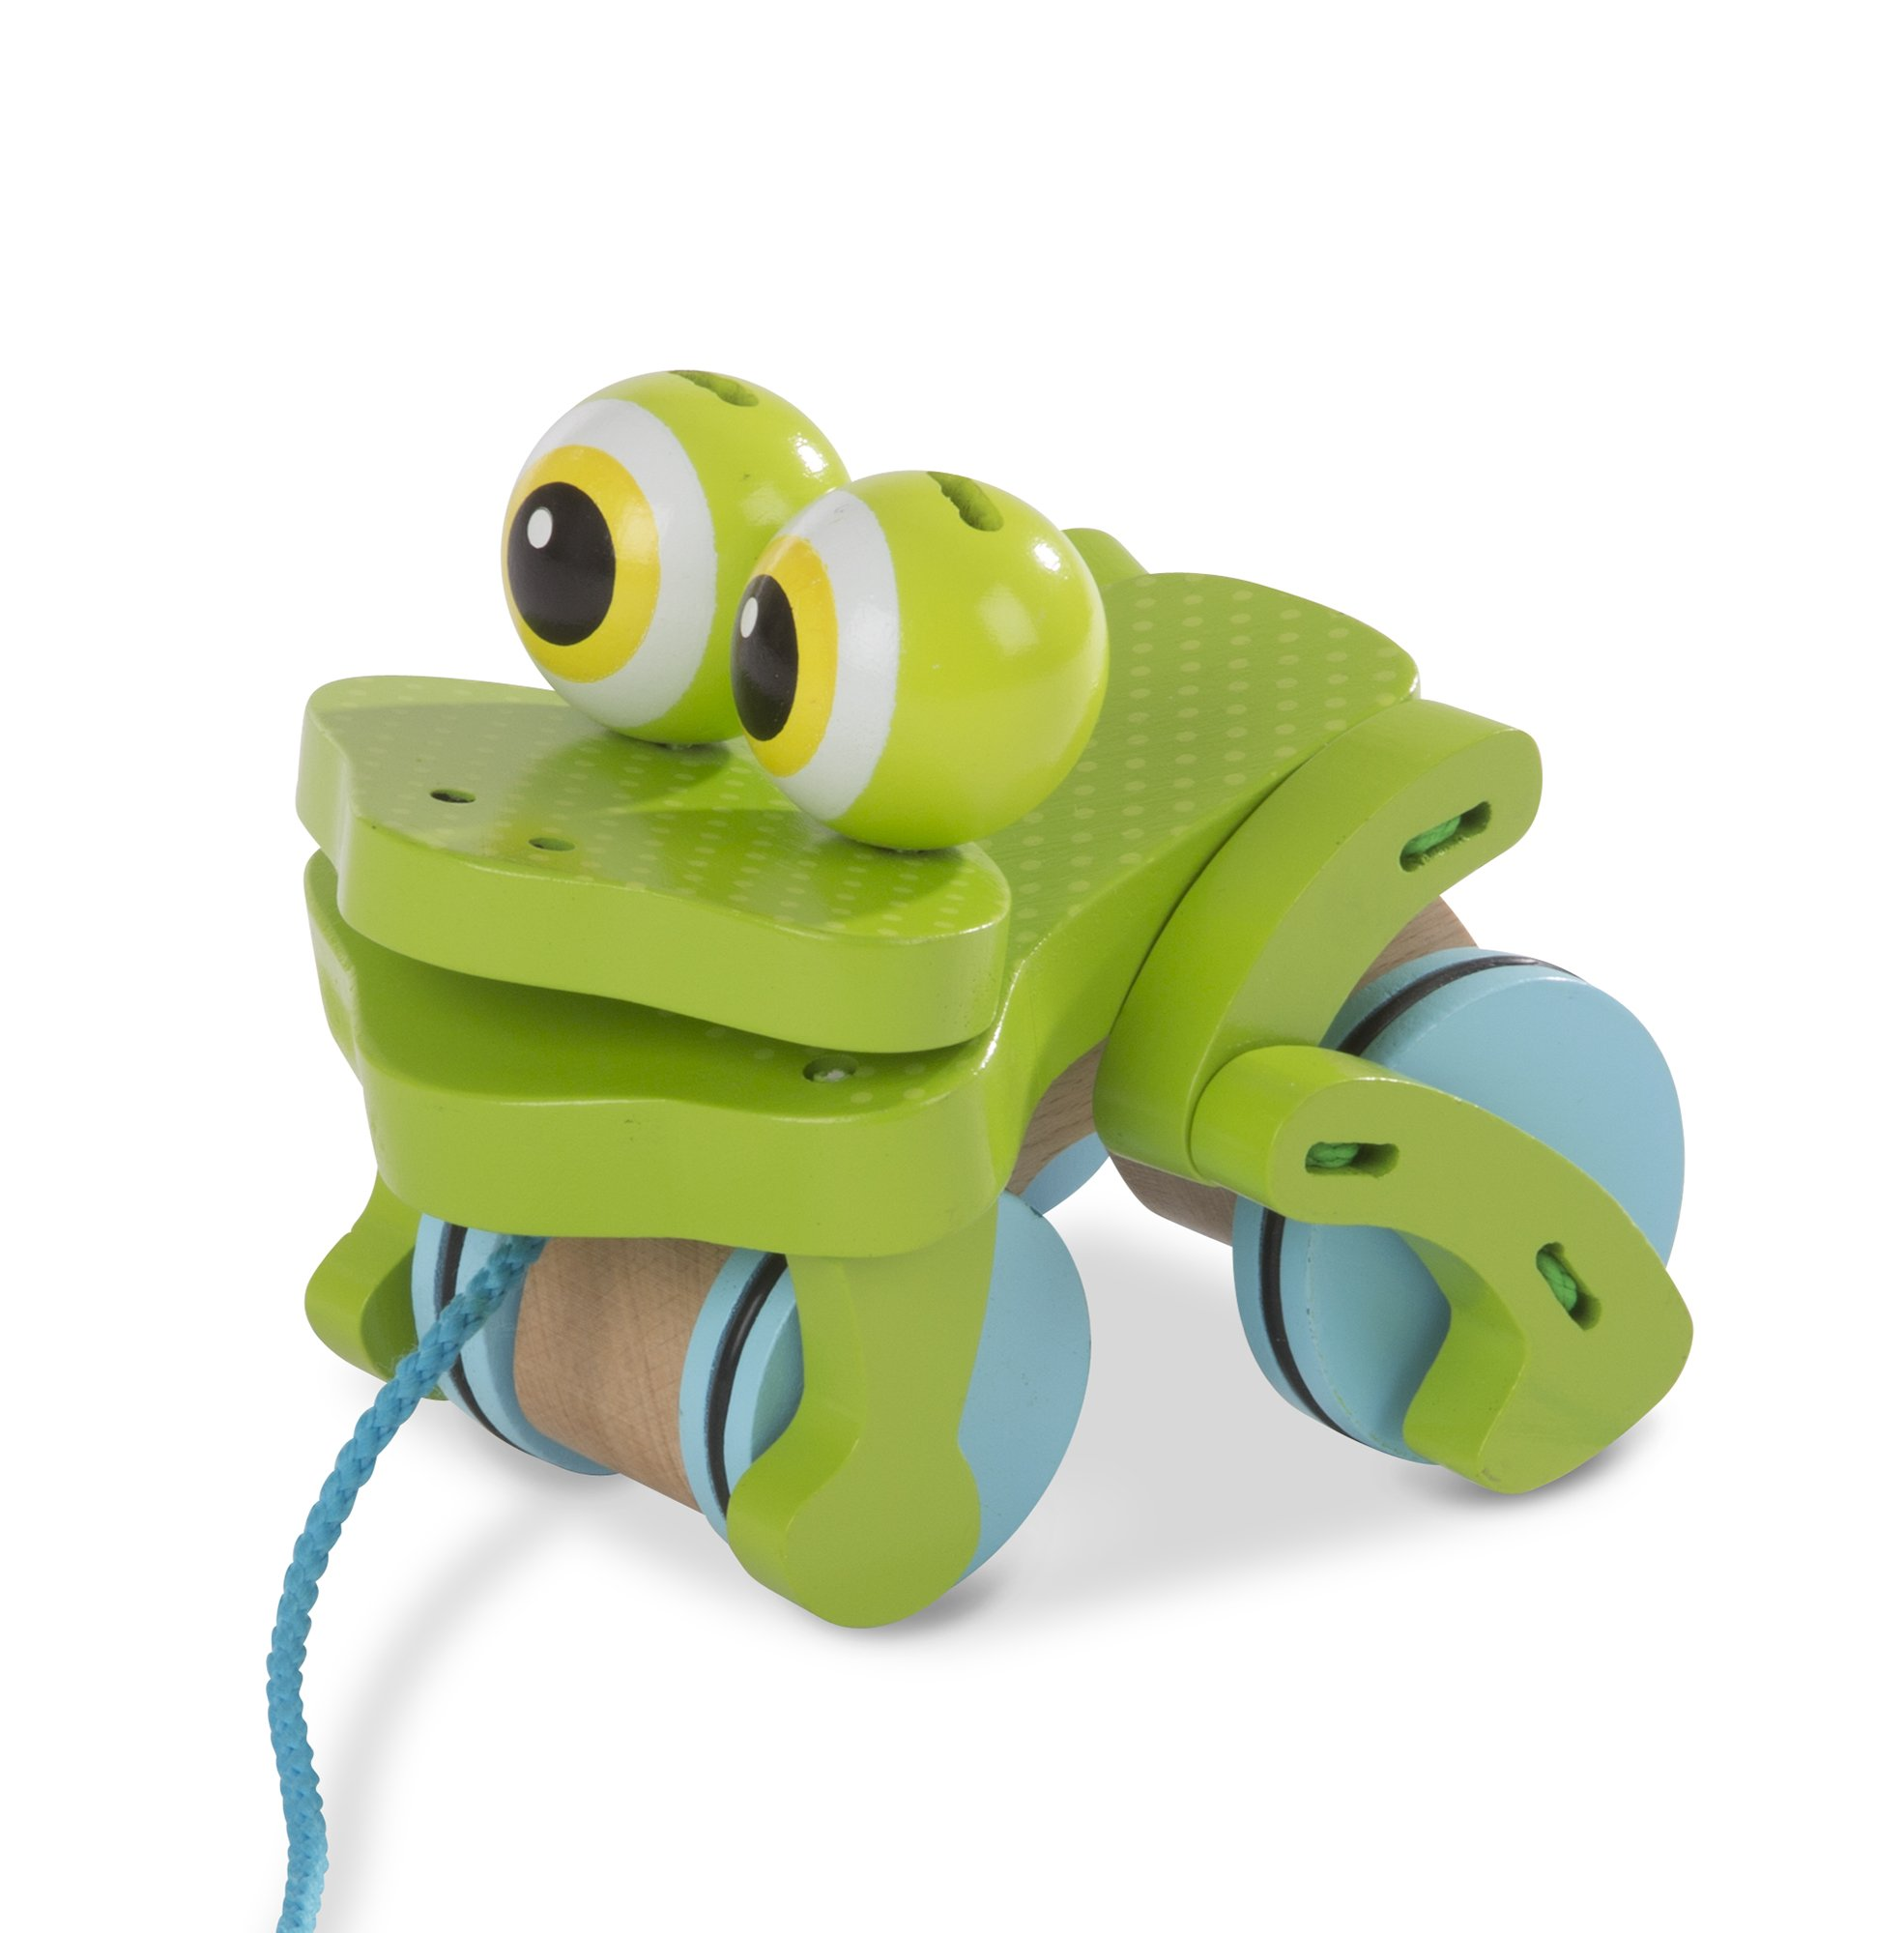 Melissa & Doug First Play Frolicking Frog Wooden Pull Toy by Melissa & Doug (Image #5)